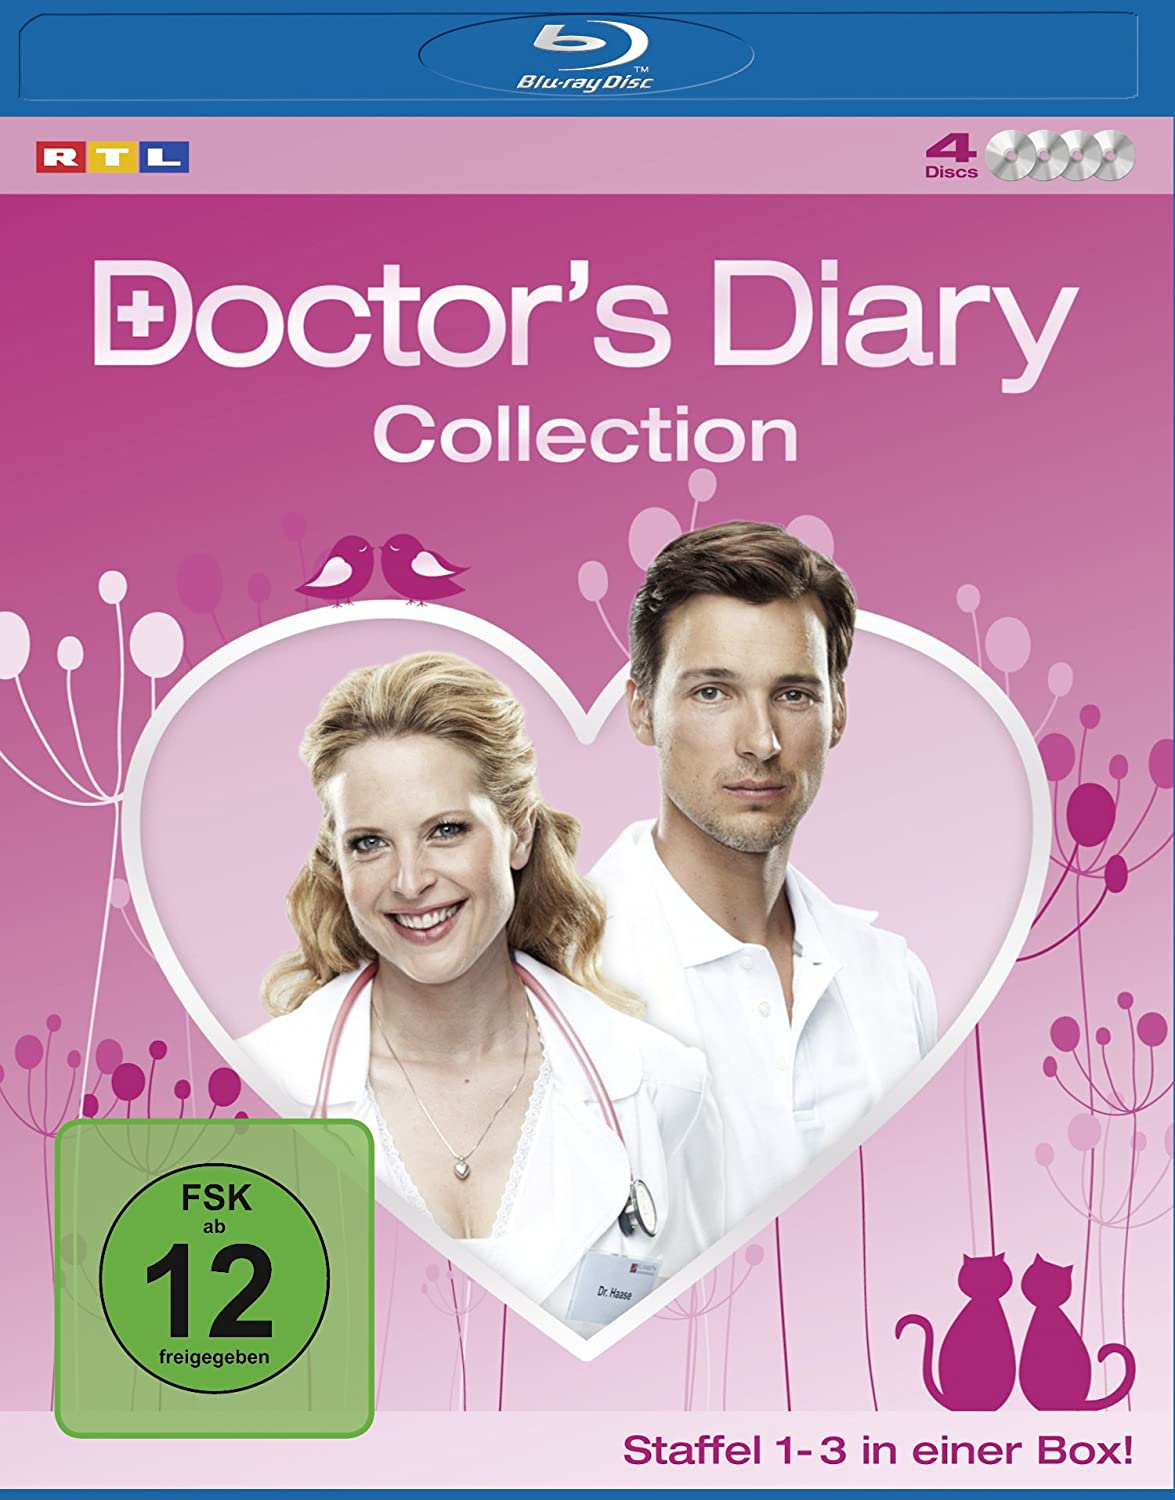 dr. diary